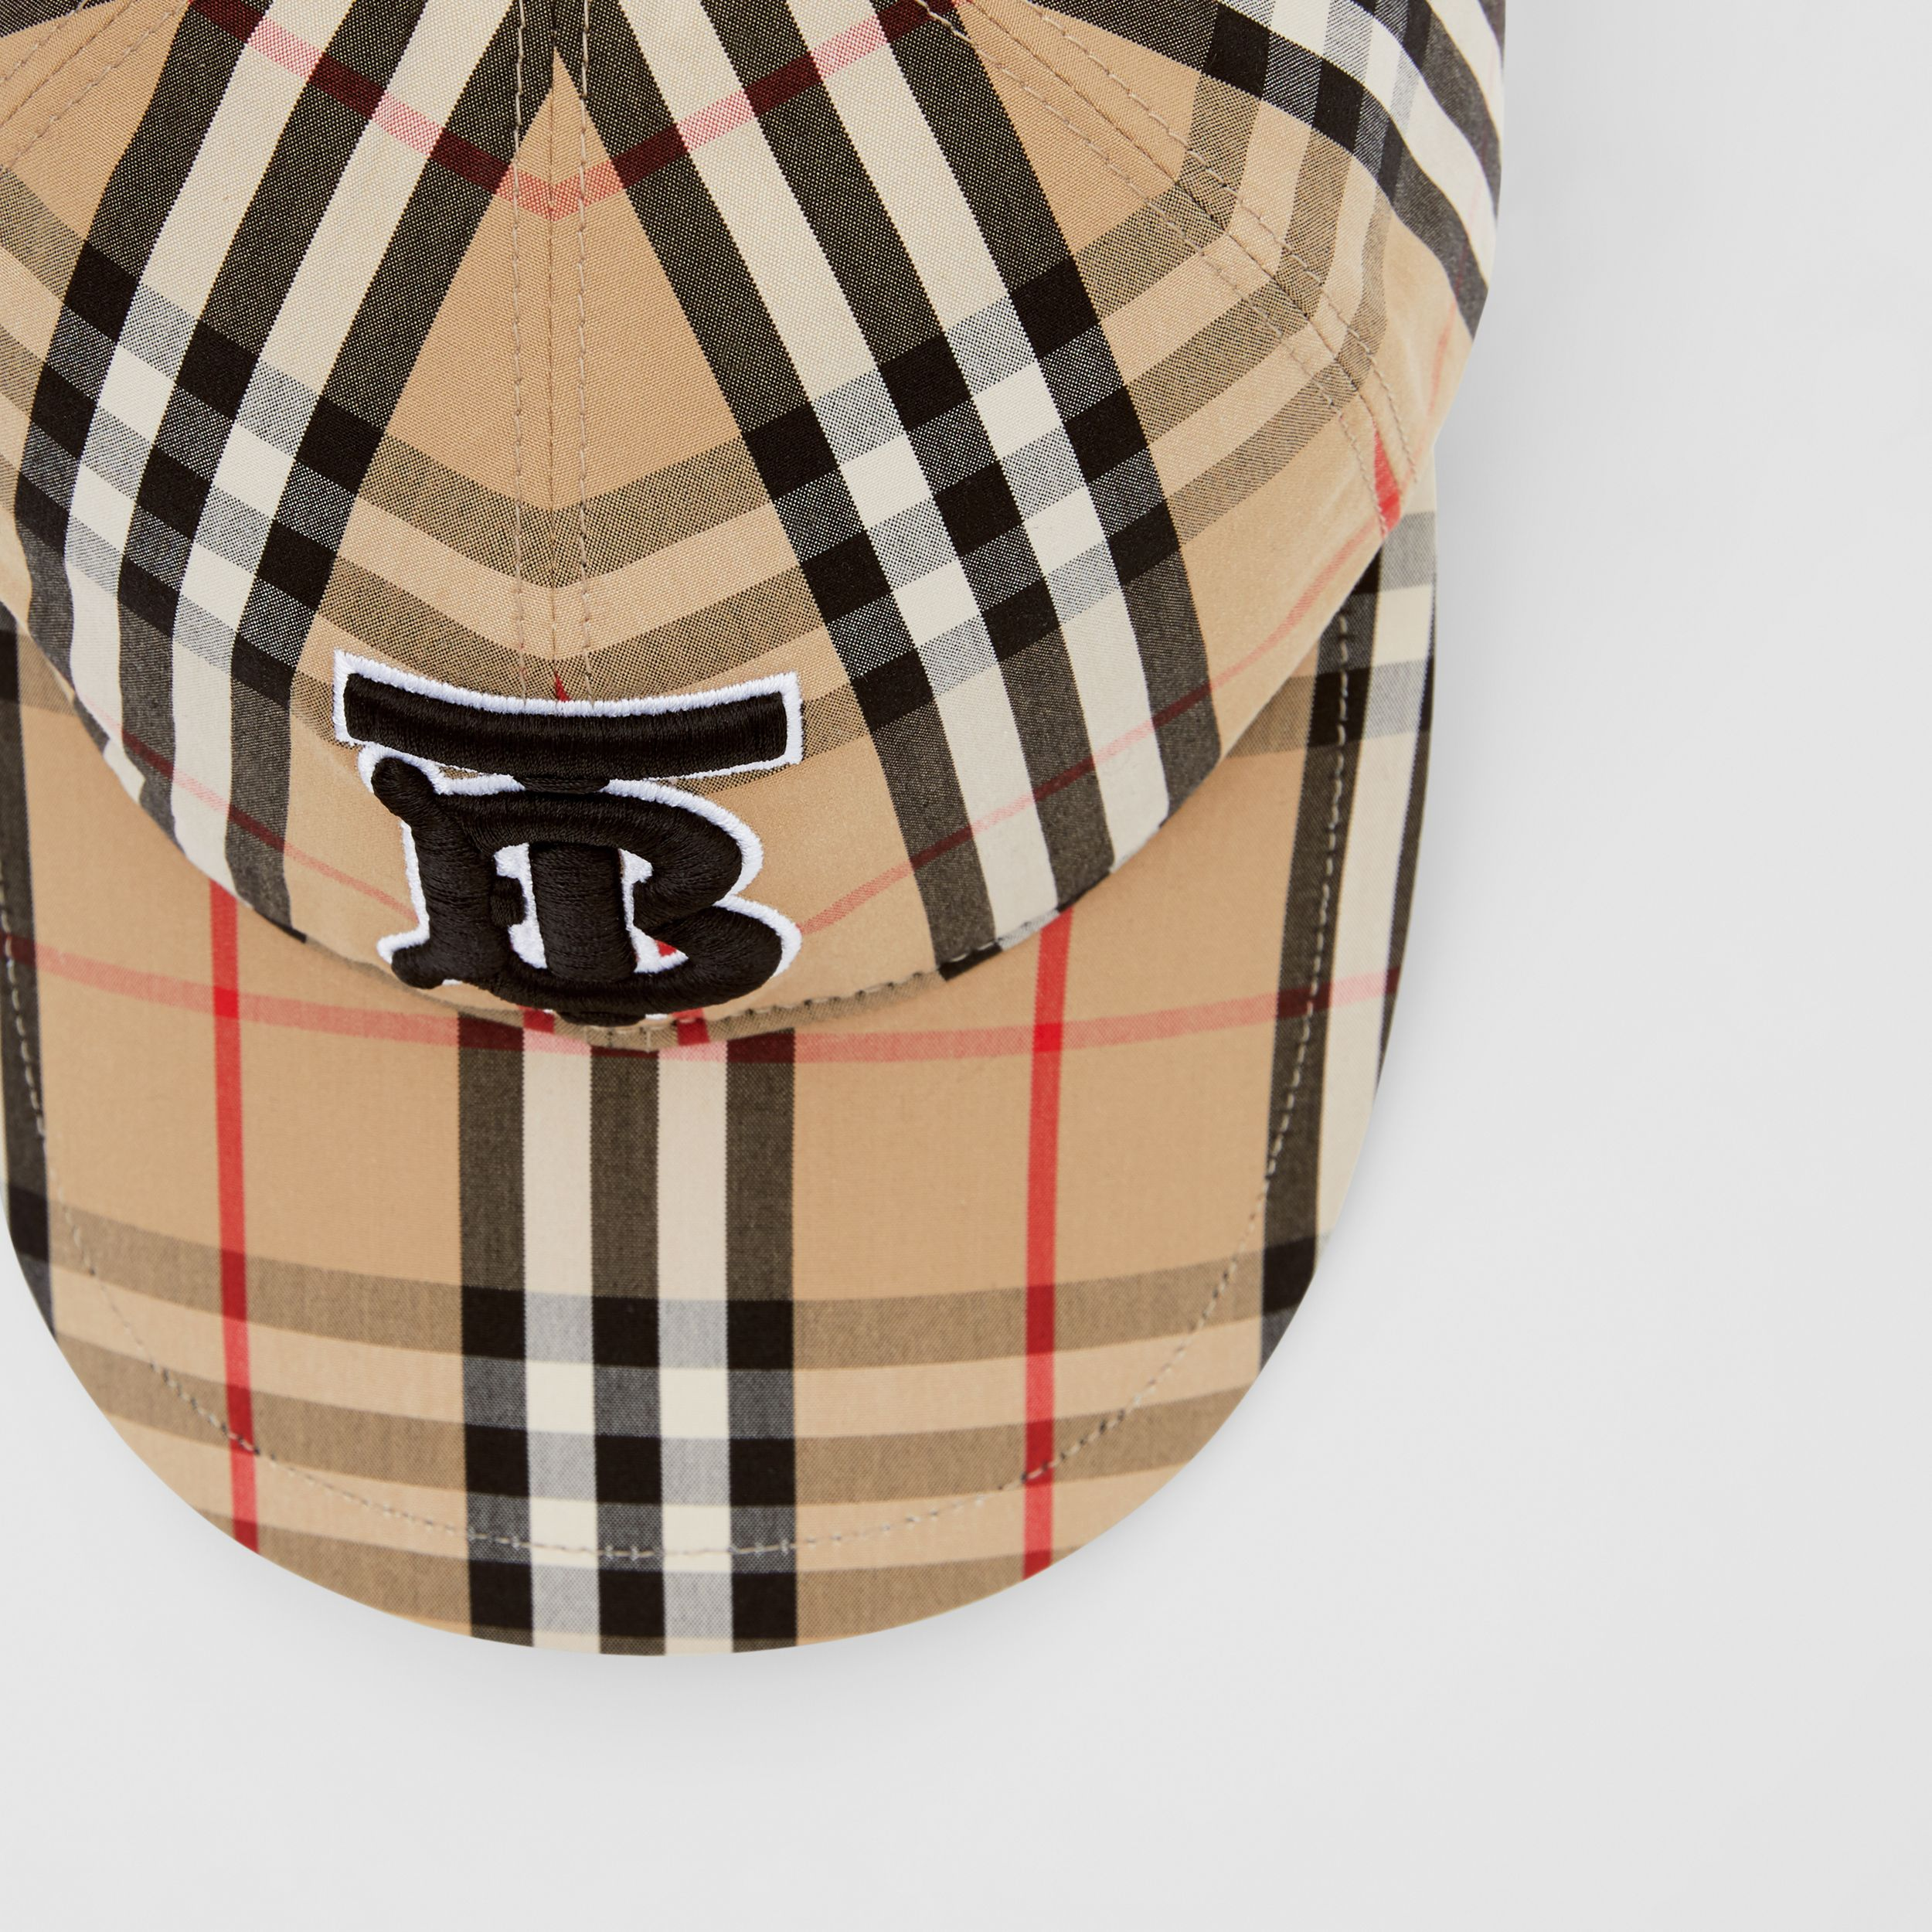 Monogram Motif Vintage Check Cotton Baseball Cap in Archive Beige | Burberry - 2